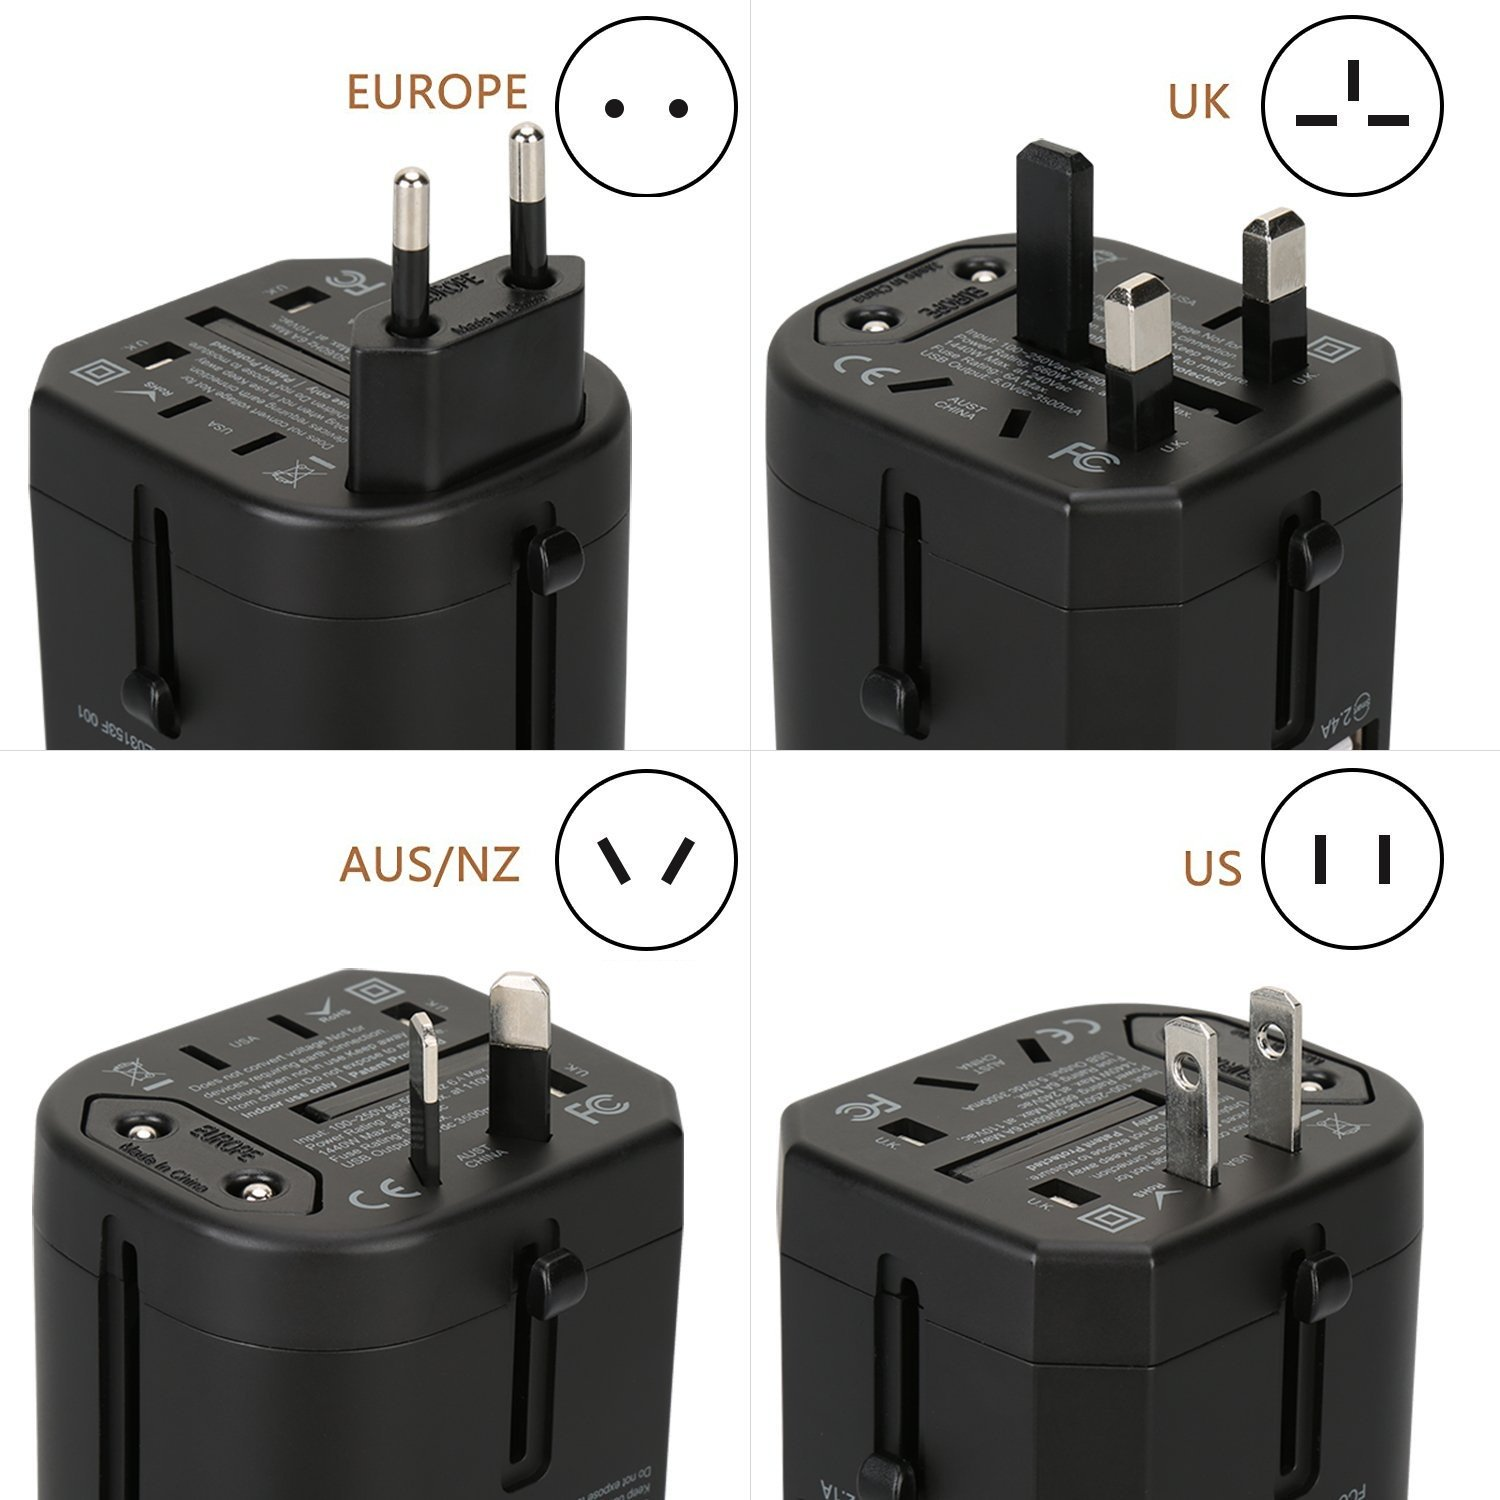 Universal USB Travel Power Adapter-Silanger All In One Wall Charger AC Power Plug Adapter For USA EU UK AUS Cell Phone Laptop Including Quad 3.5A Smart Power USB Charging Port (4X USB) by Silanger (Image #3)